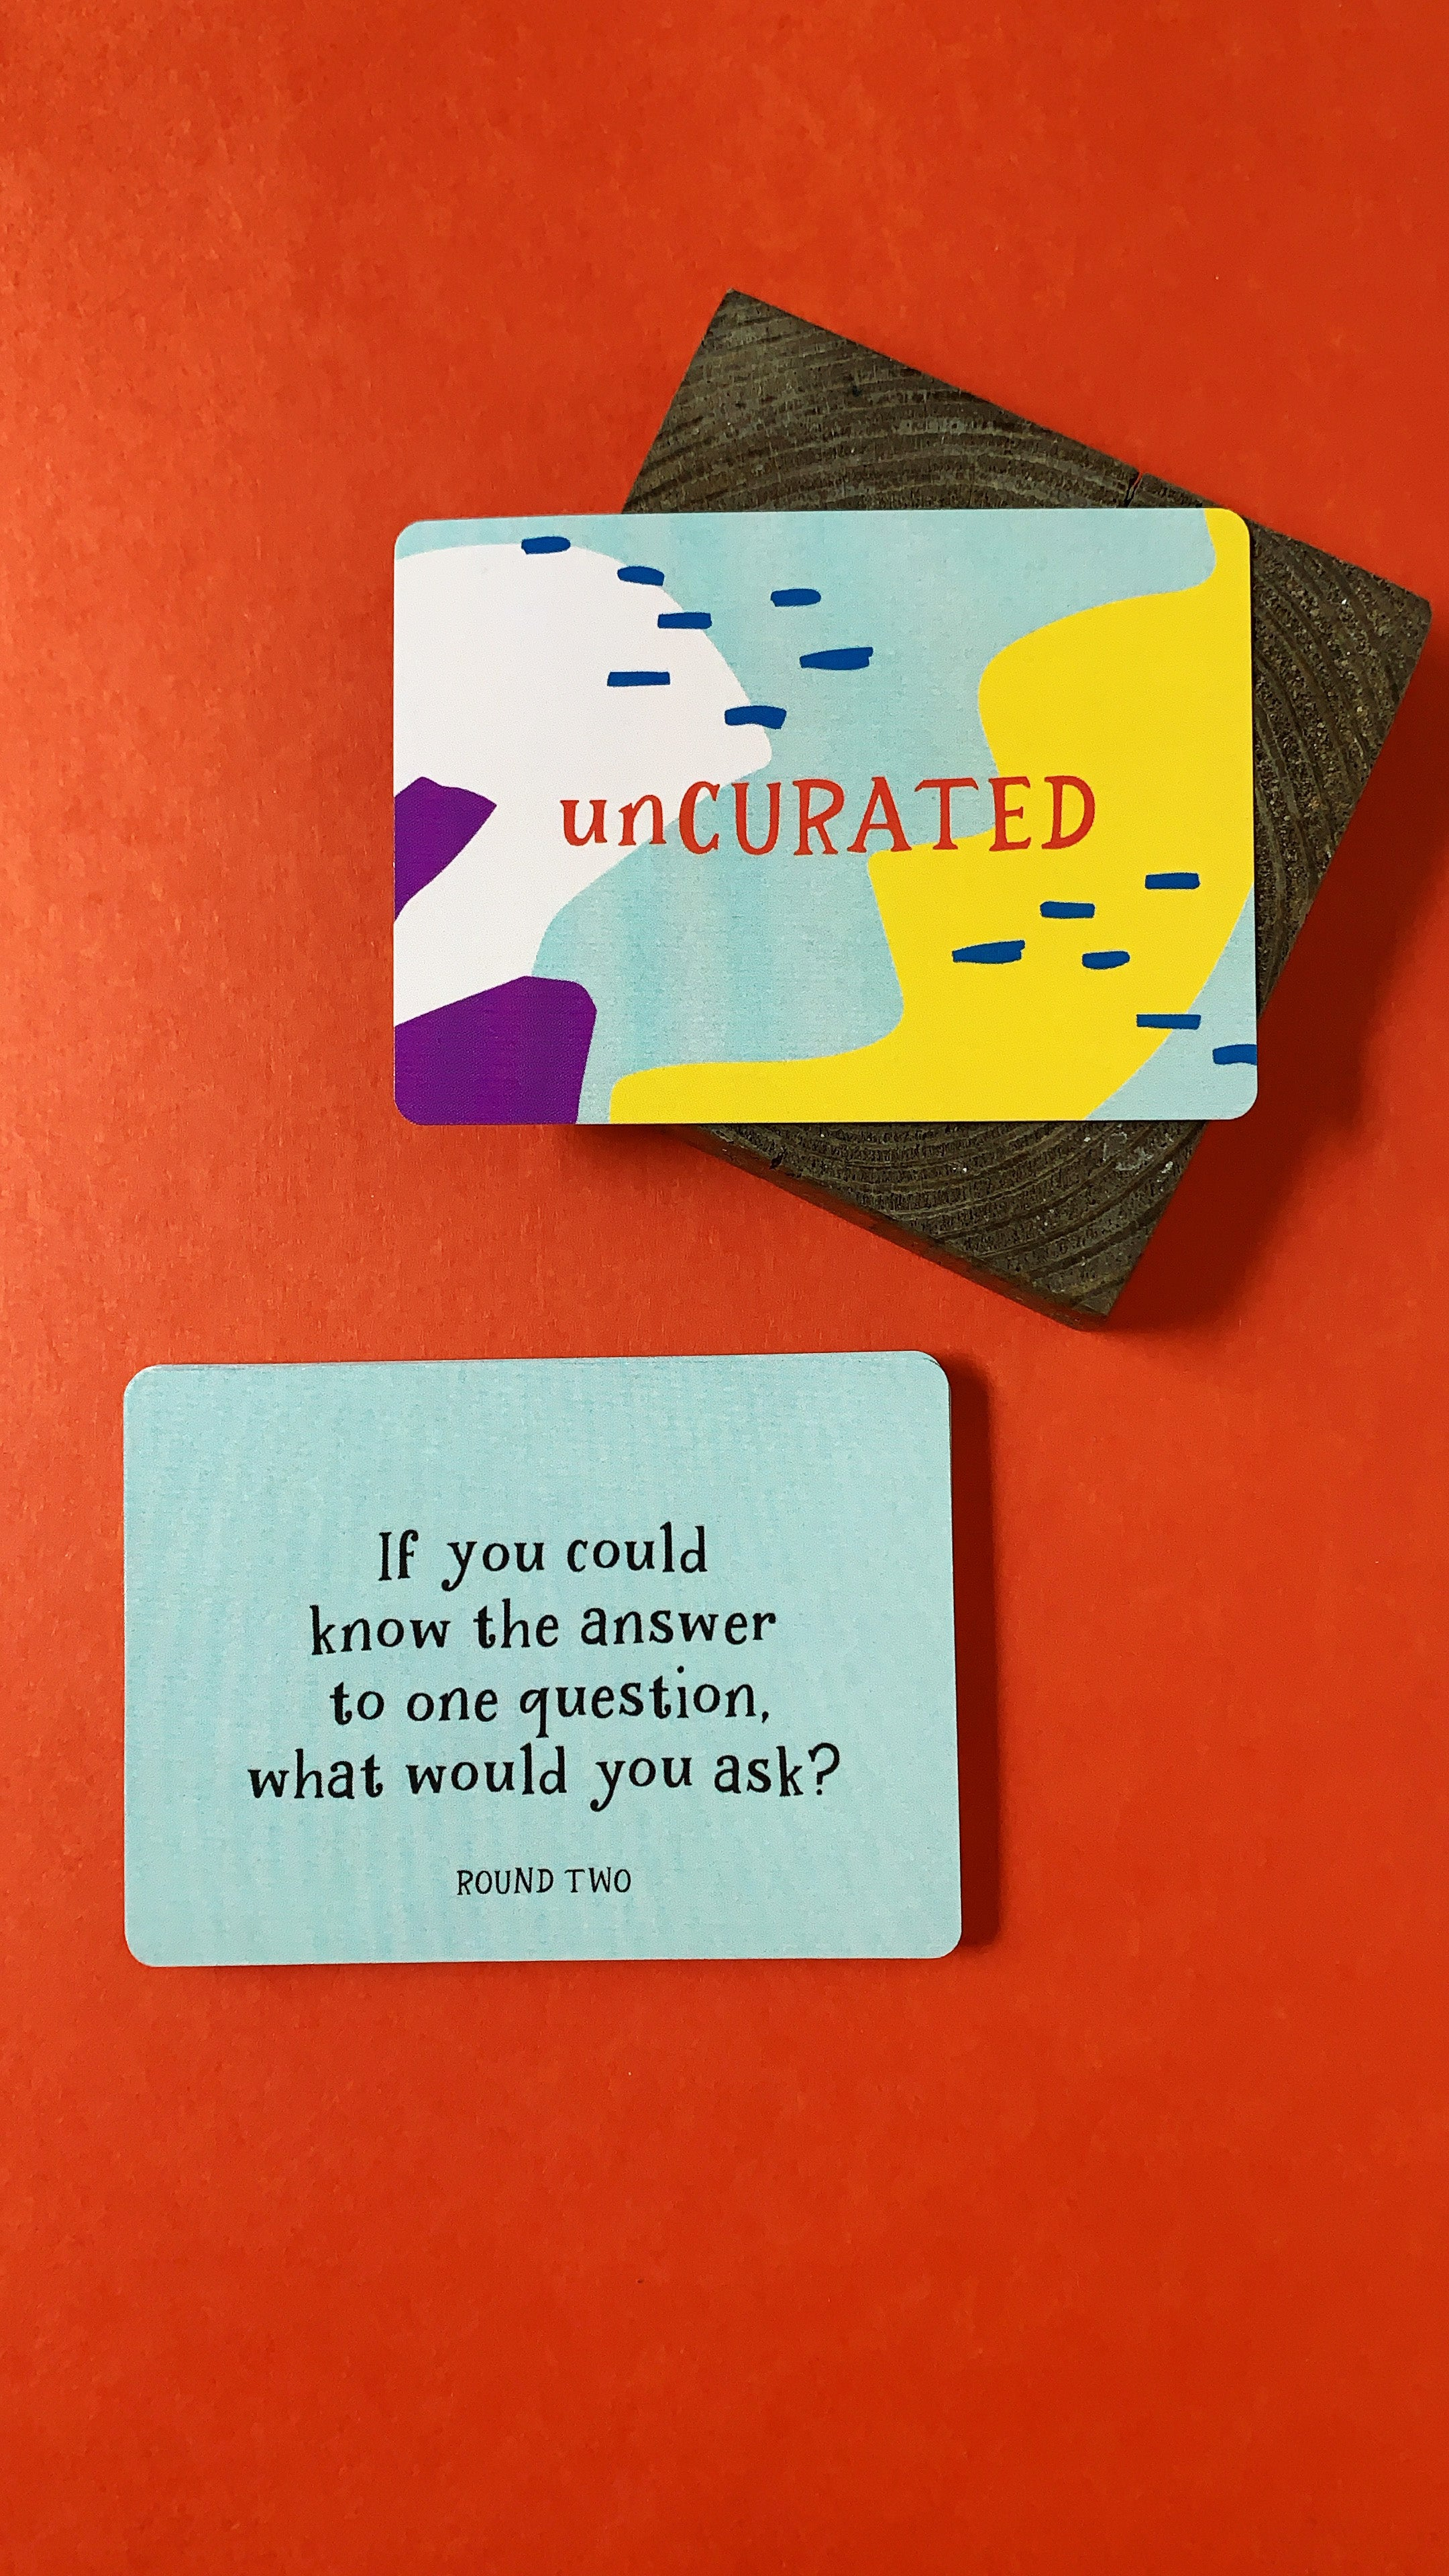 unCURATED - the card game that sparks meaningful conversations, connection, and emotional well-being